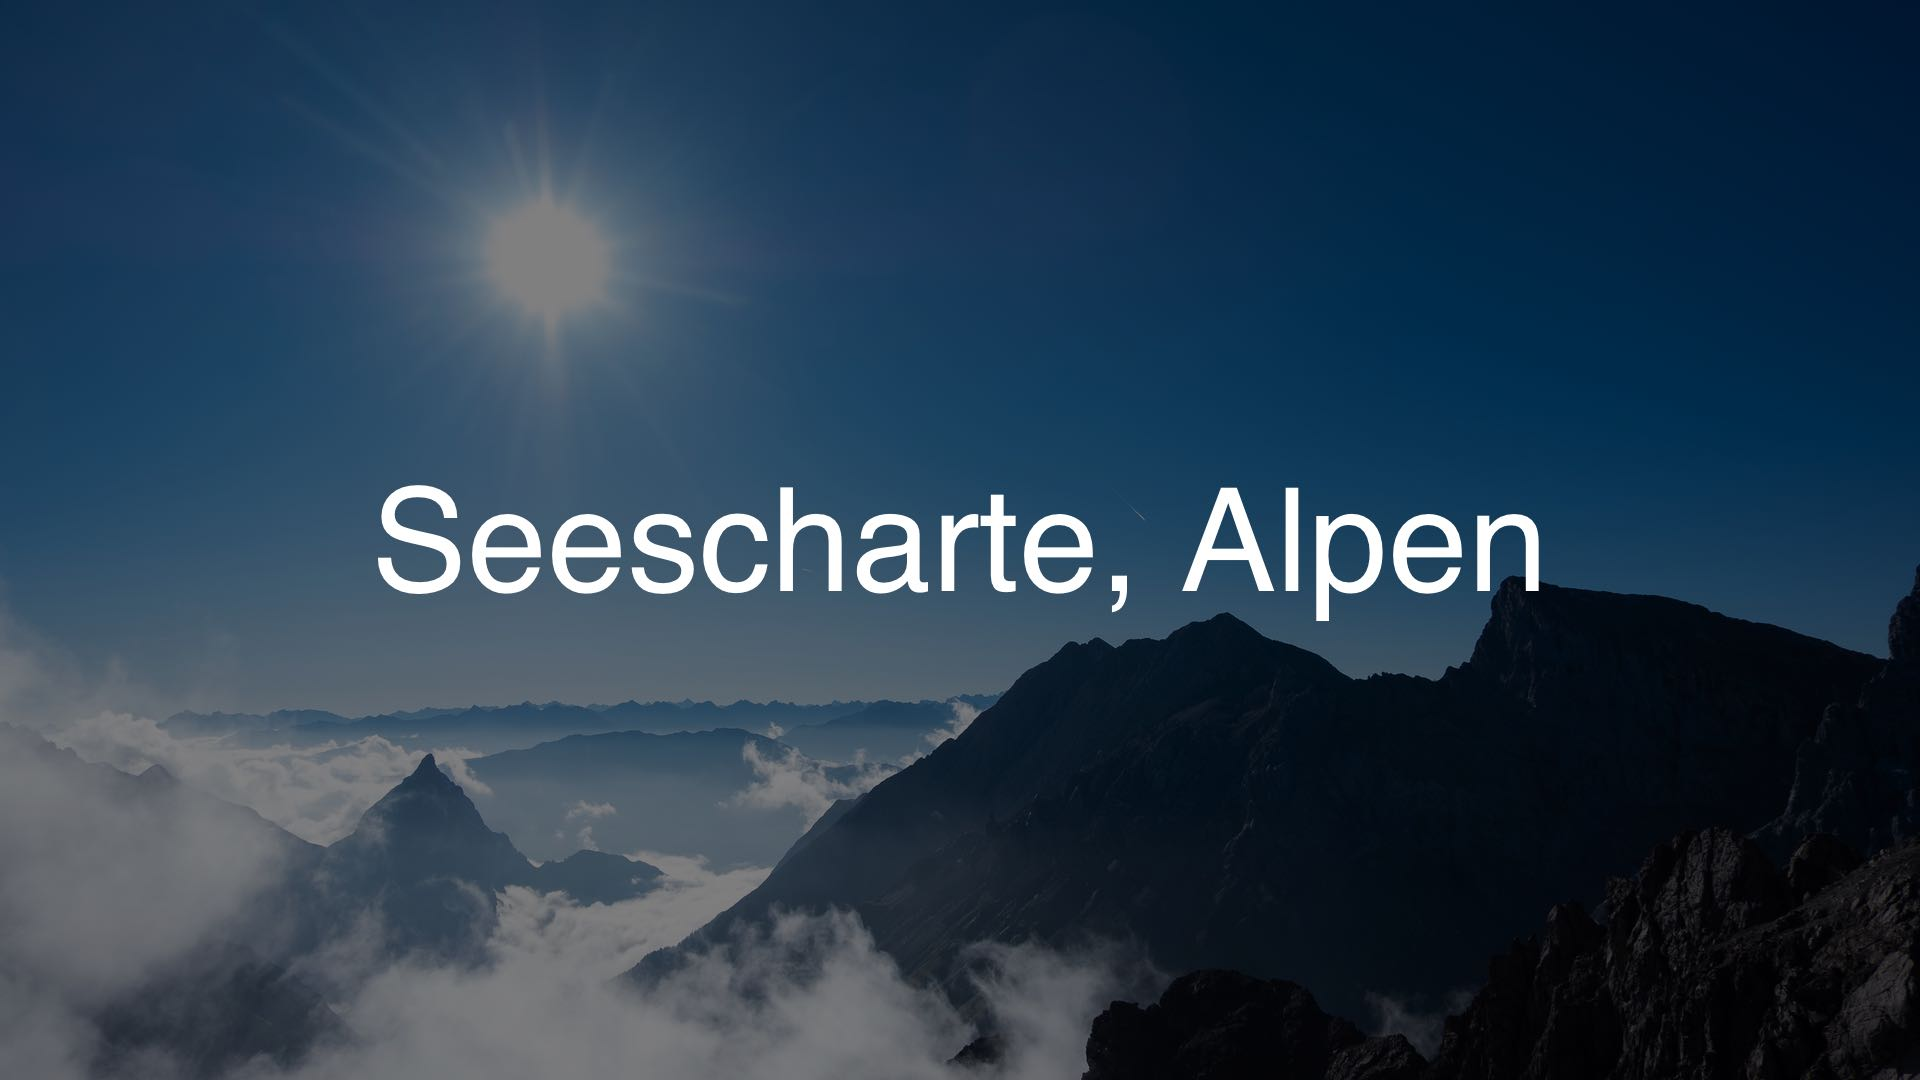 Seescharte 1920×1080 dark